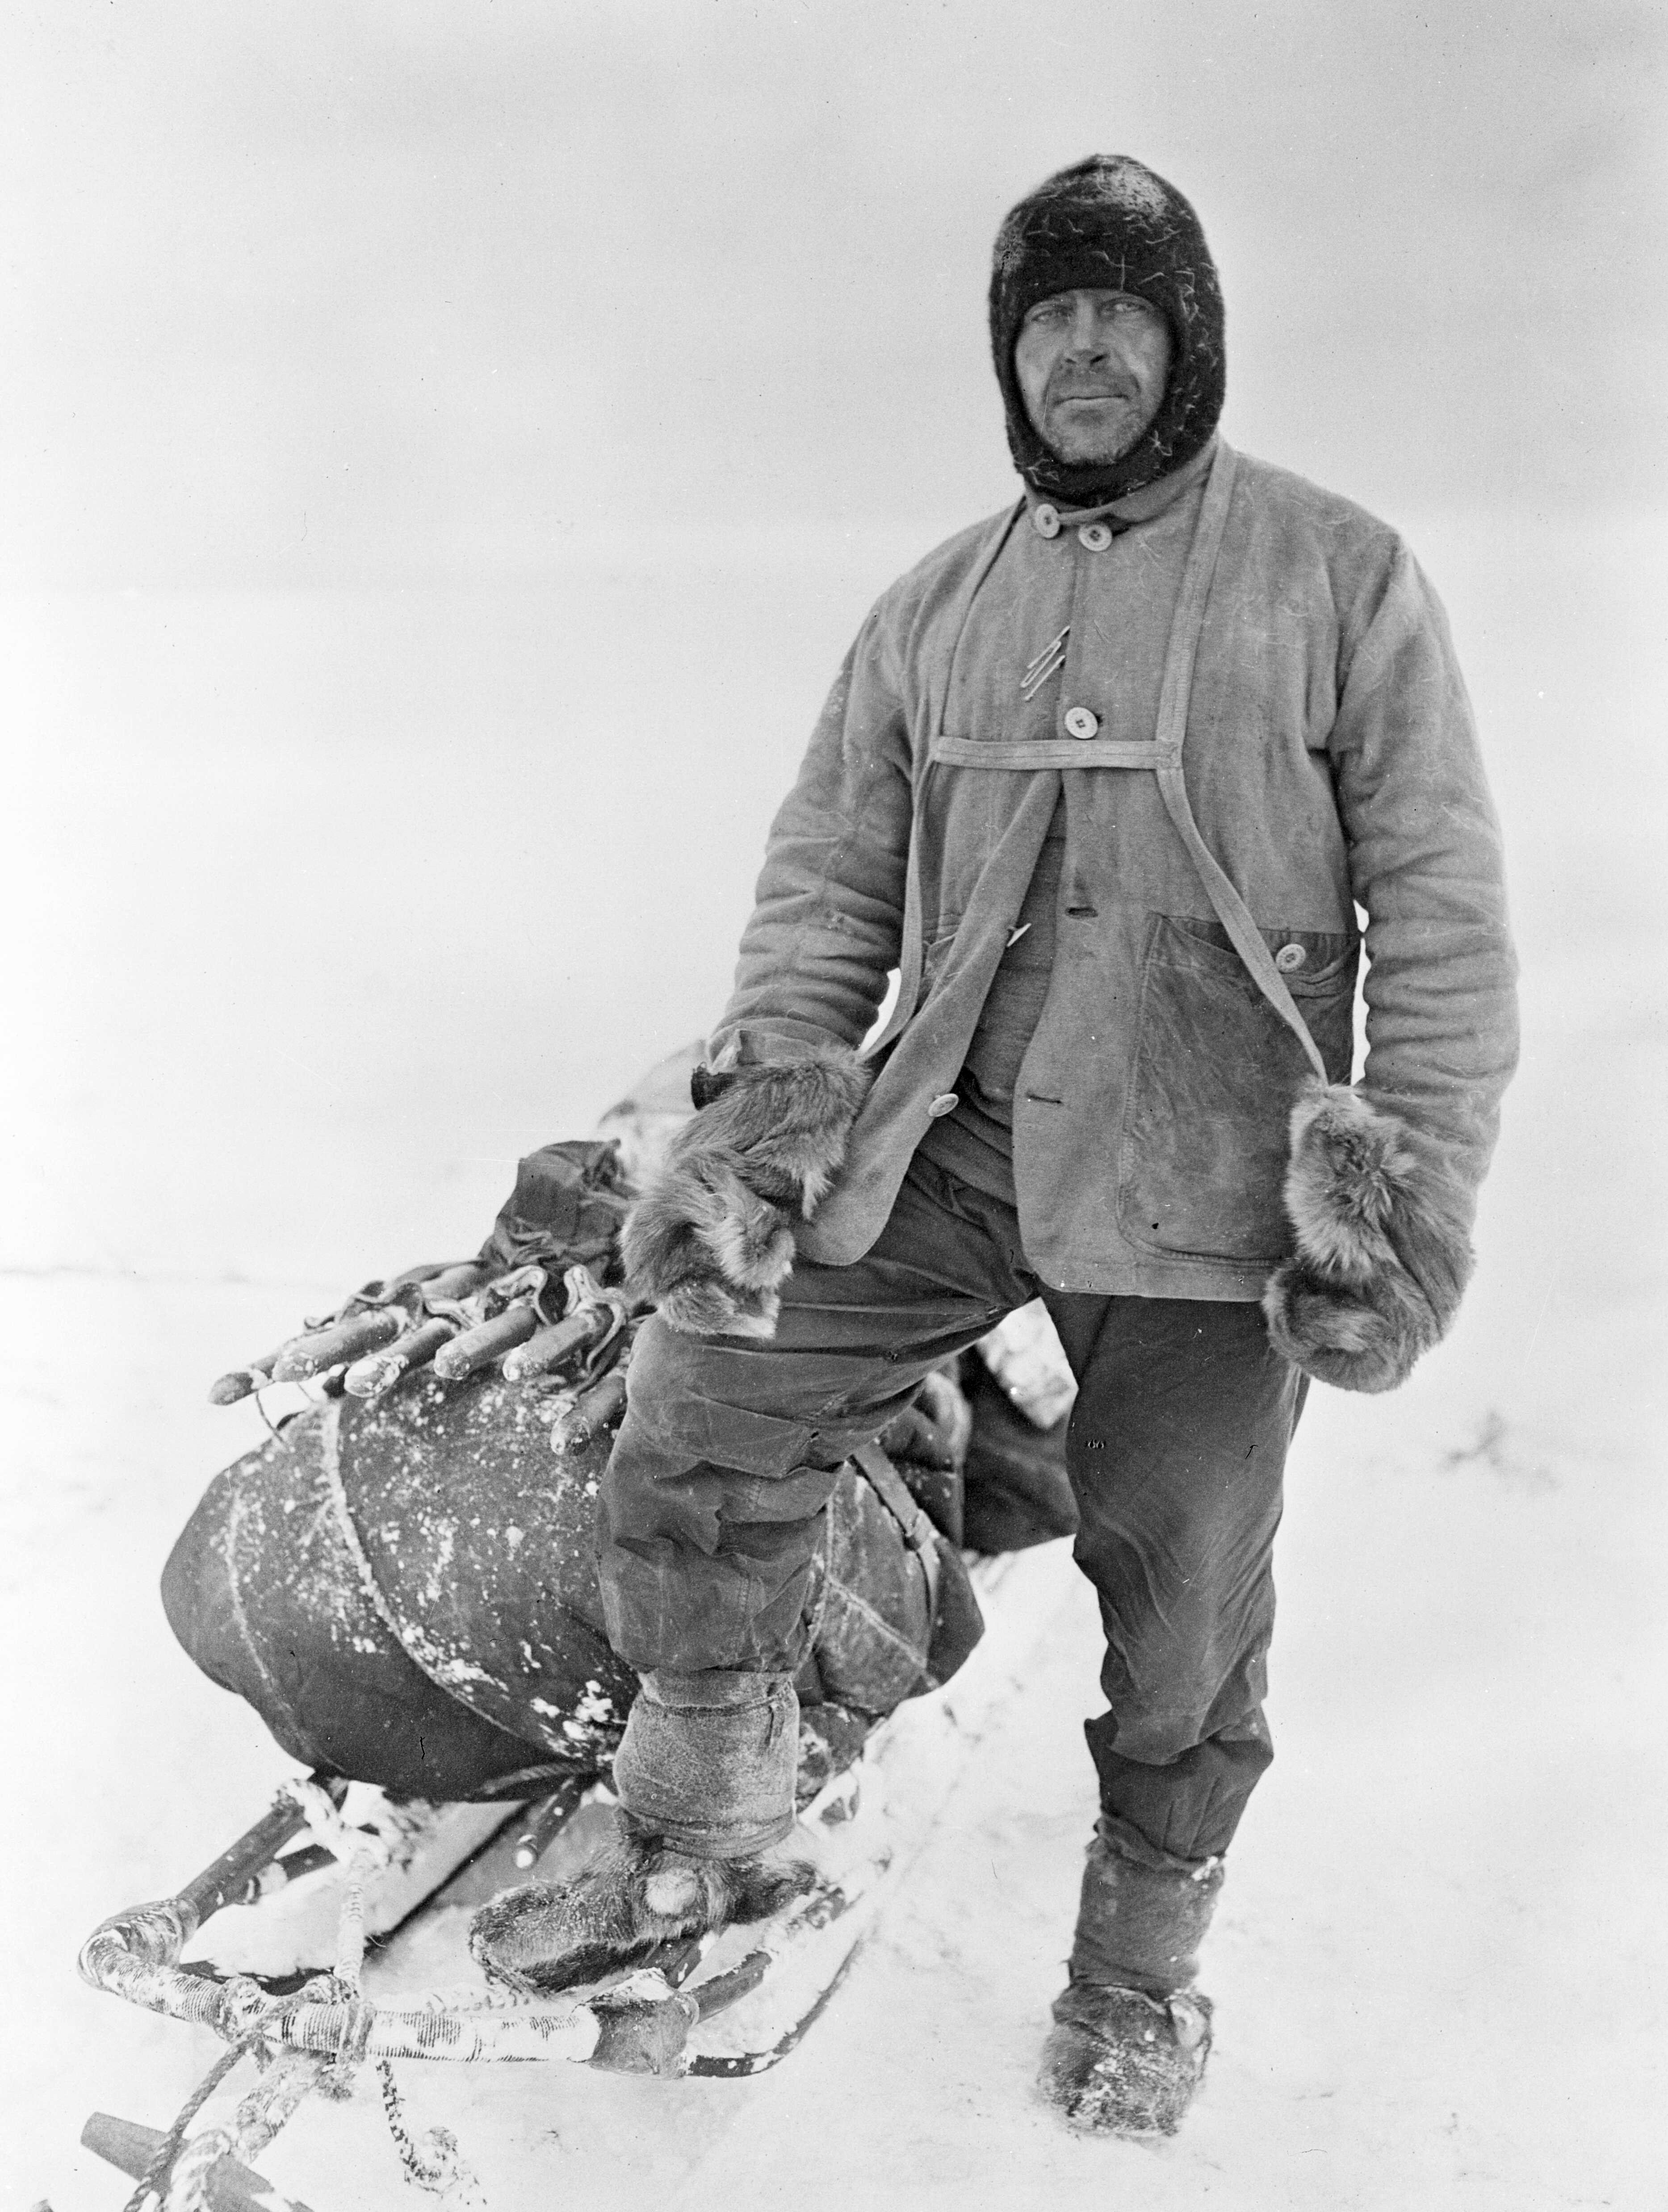 Captain Robert Falcon Scott, photographed by Herbert Ponting in 1911